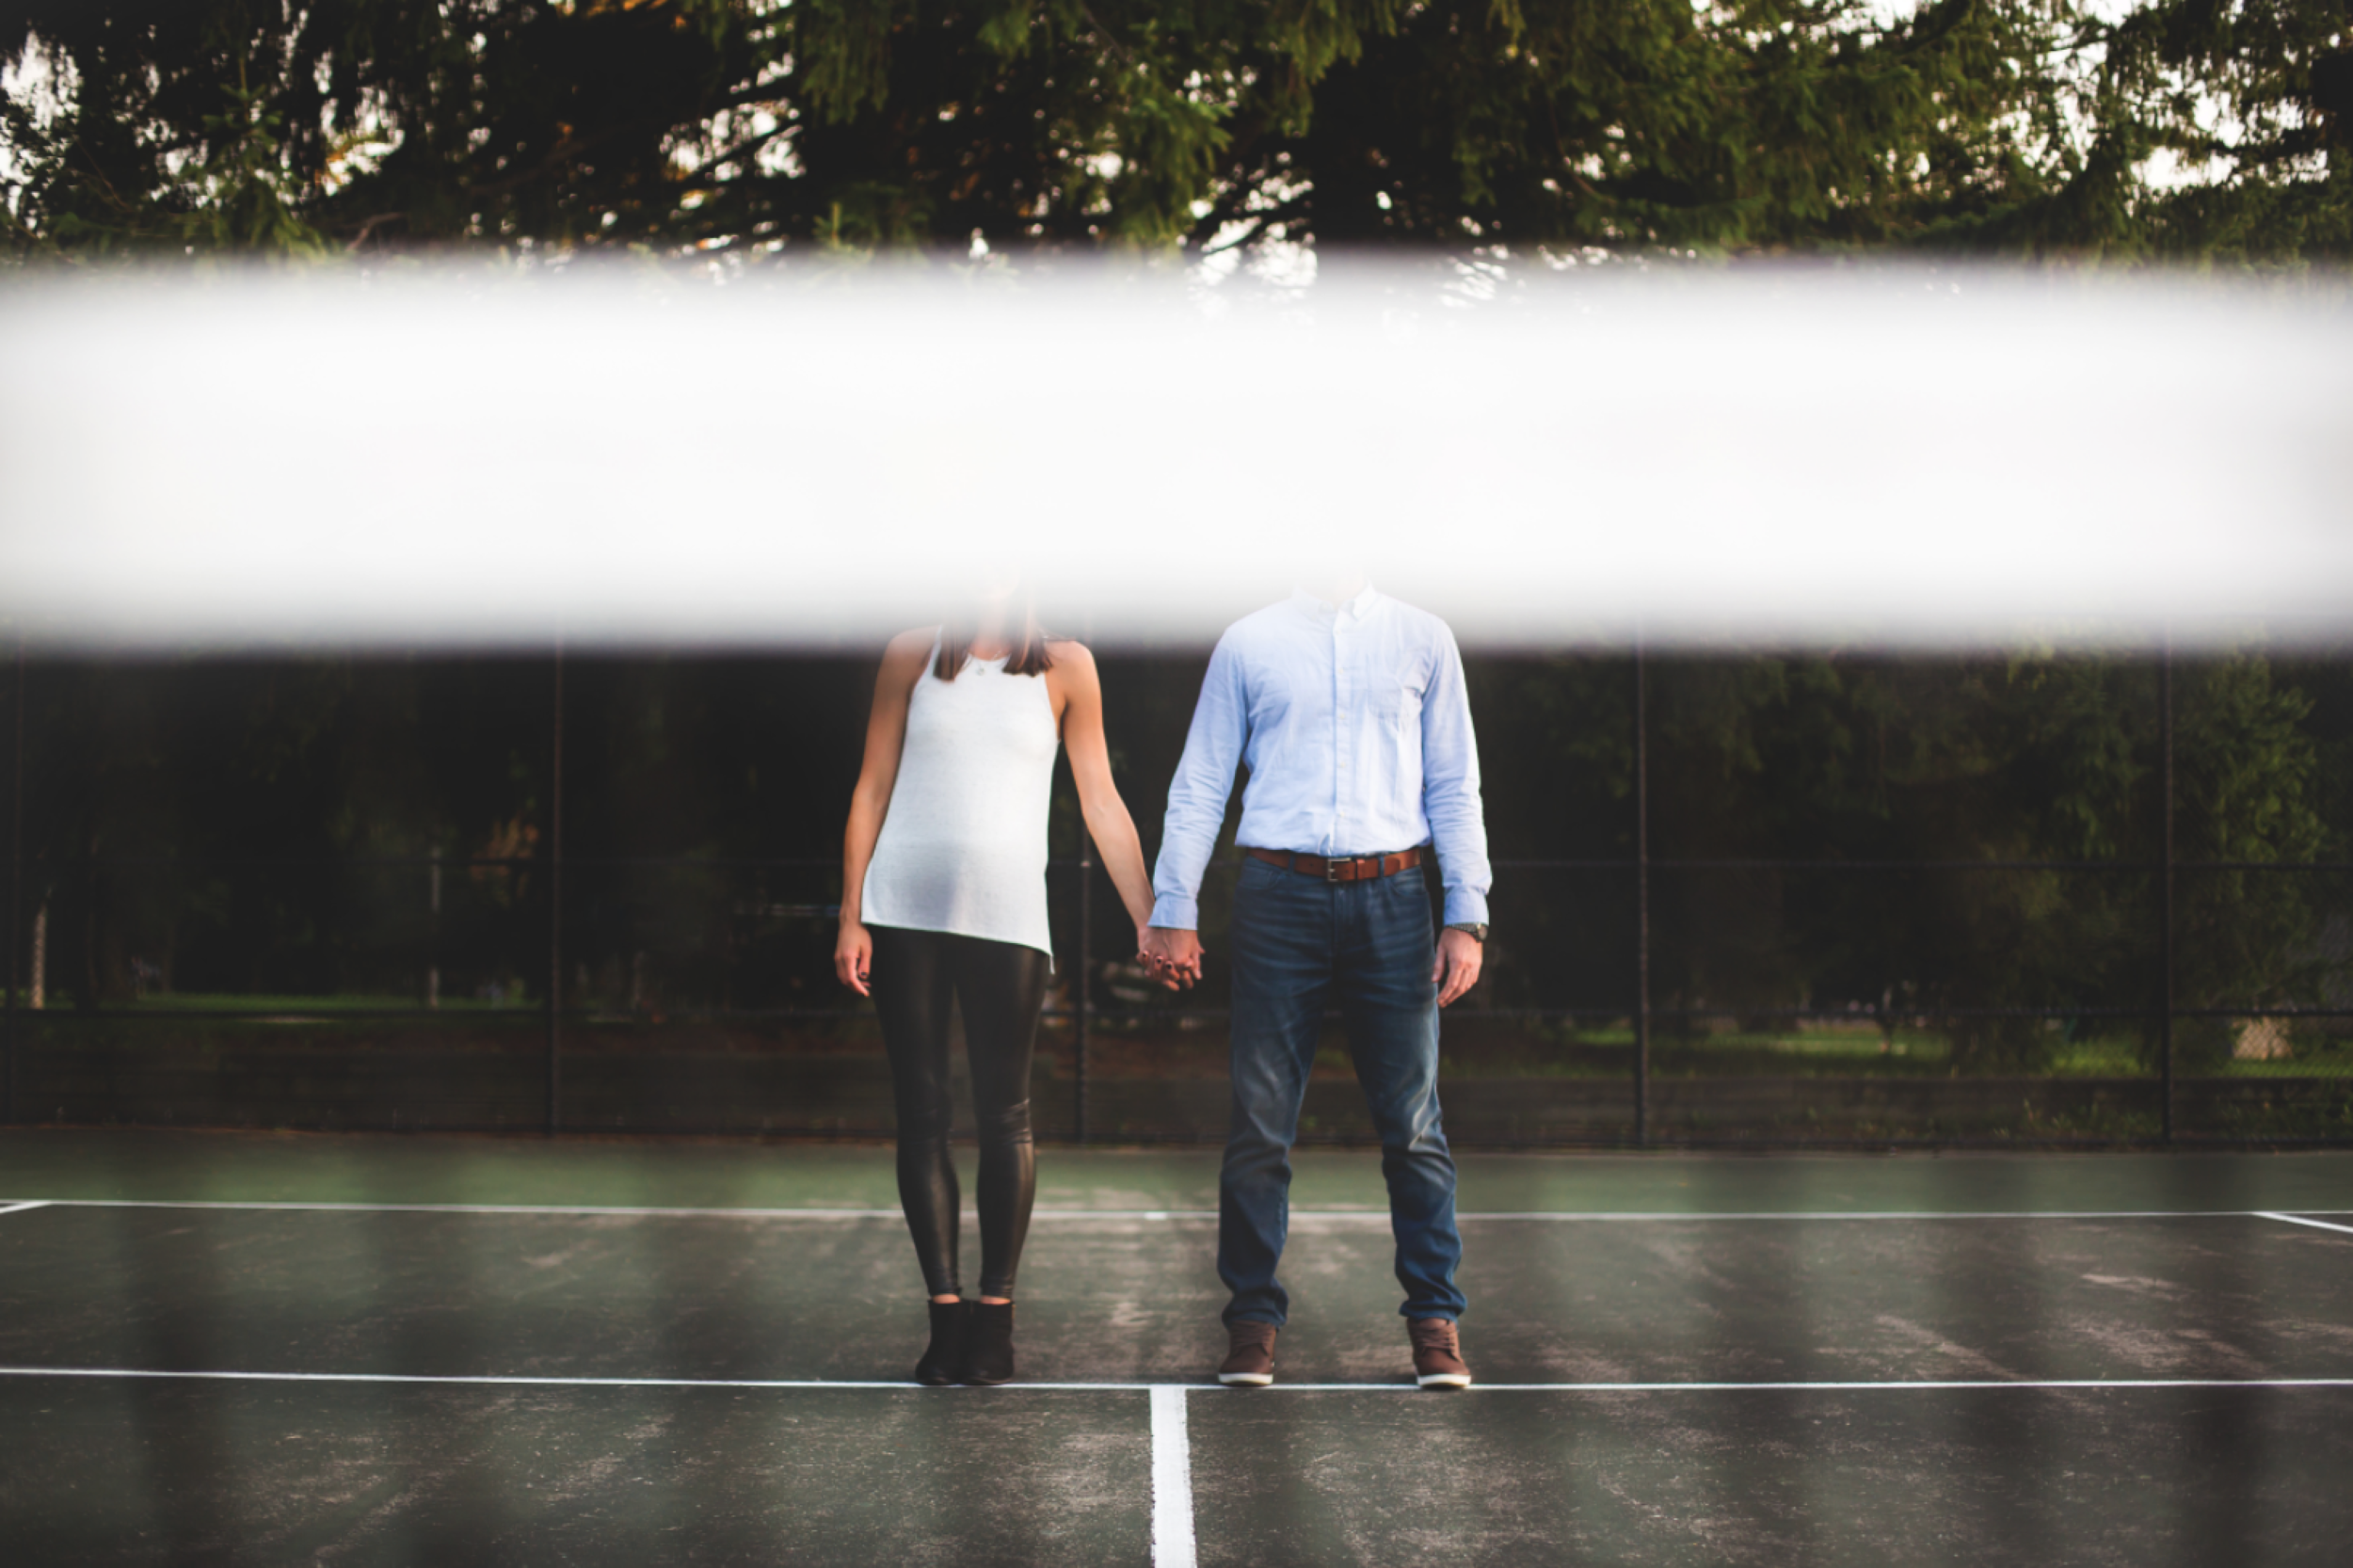 Engagement-Photos-Guelph-Park-Photographer-Wedding-Hamilton-GTA-Niagara-Oakville-Guelph-Tennis-Court-Basketball-Modern-Moments-by-Lauren-Engaged-Photography-Photo-Image-7.png